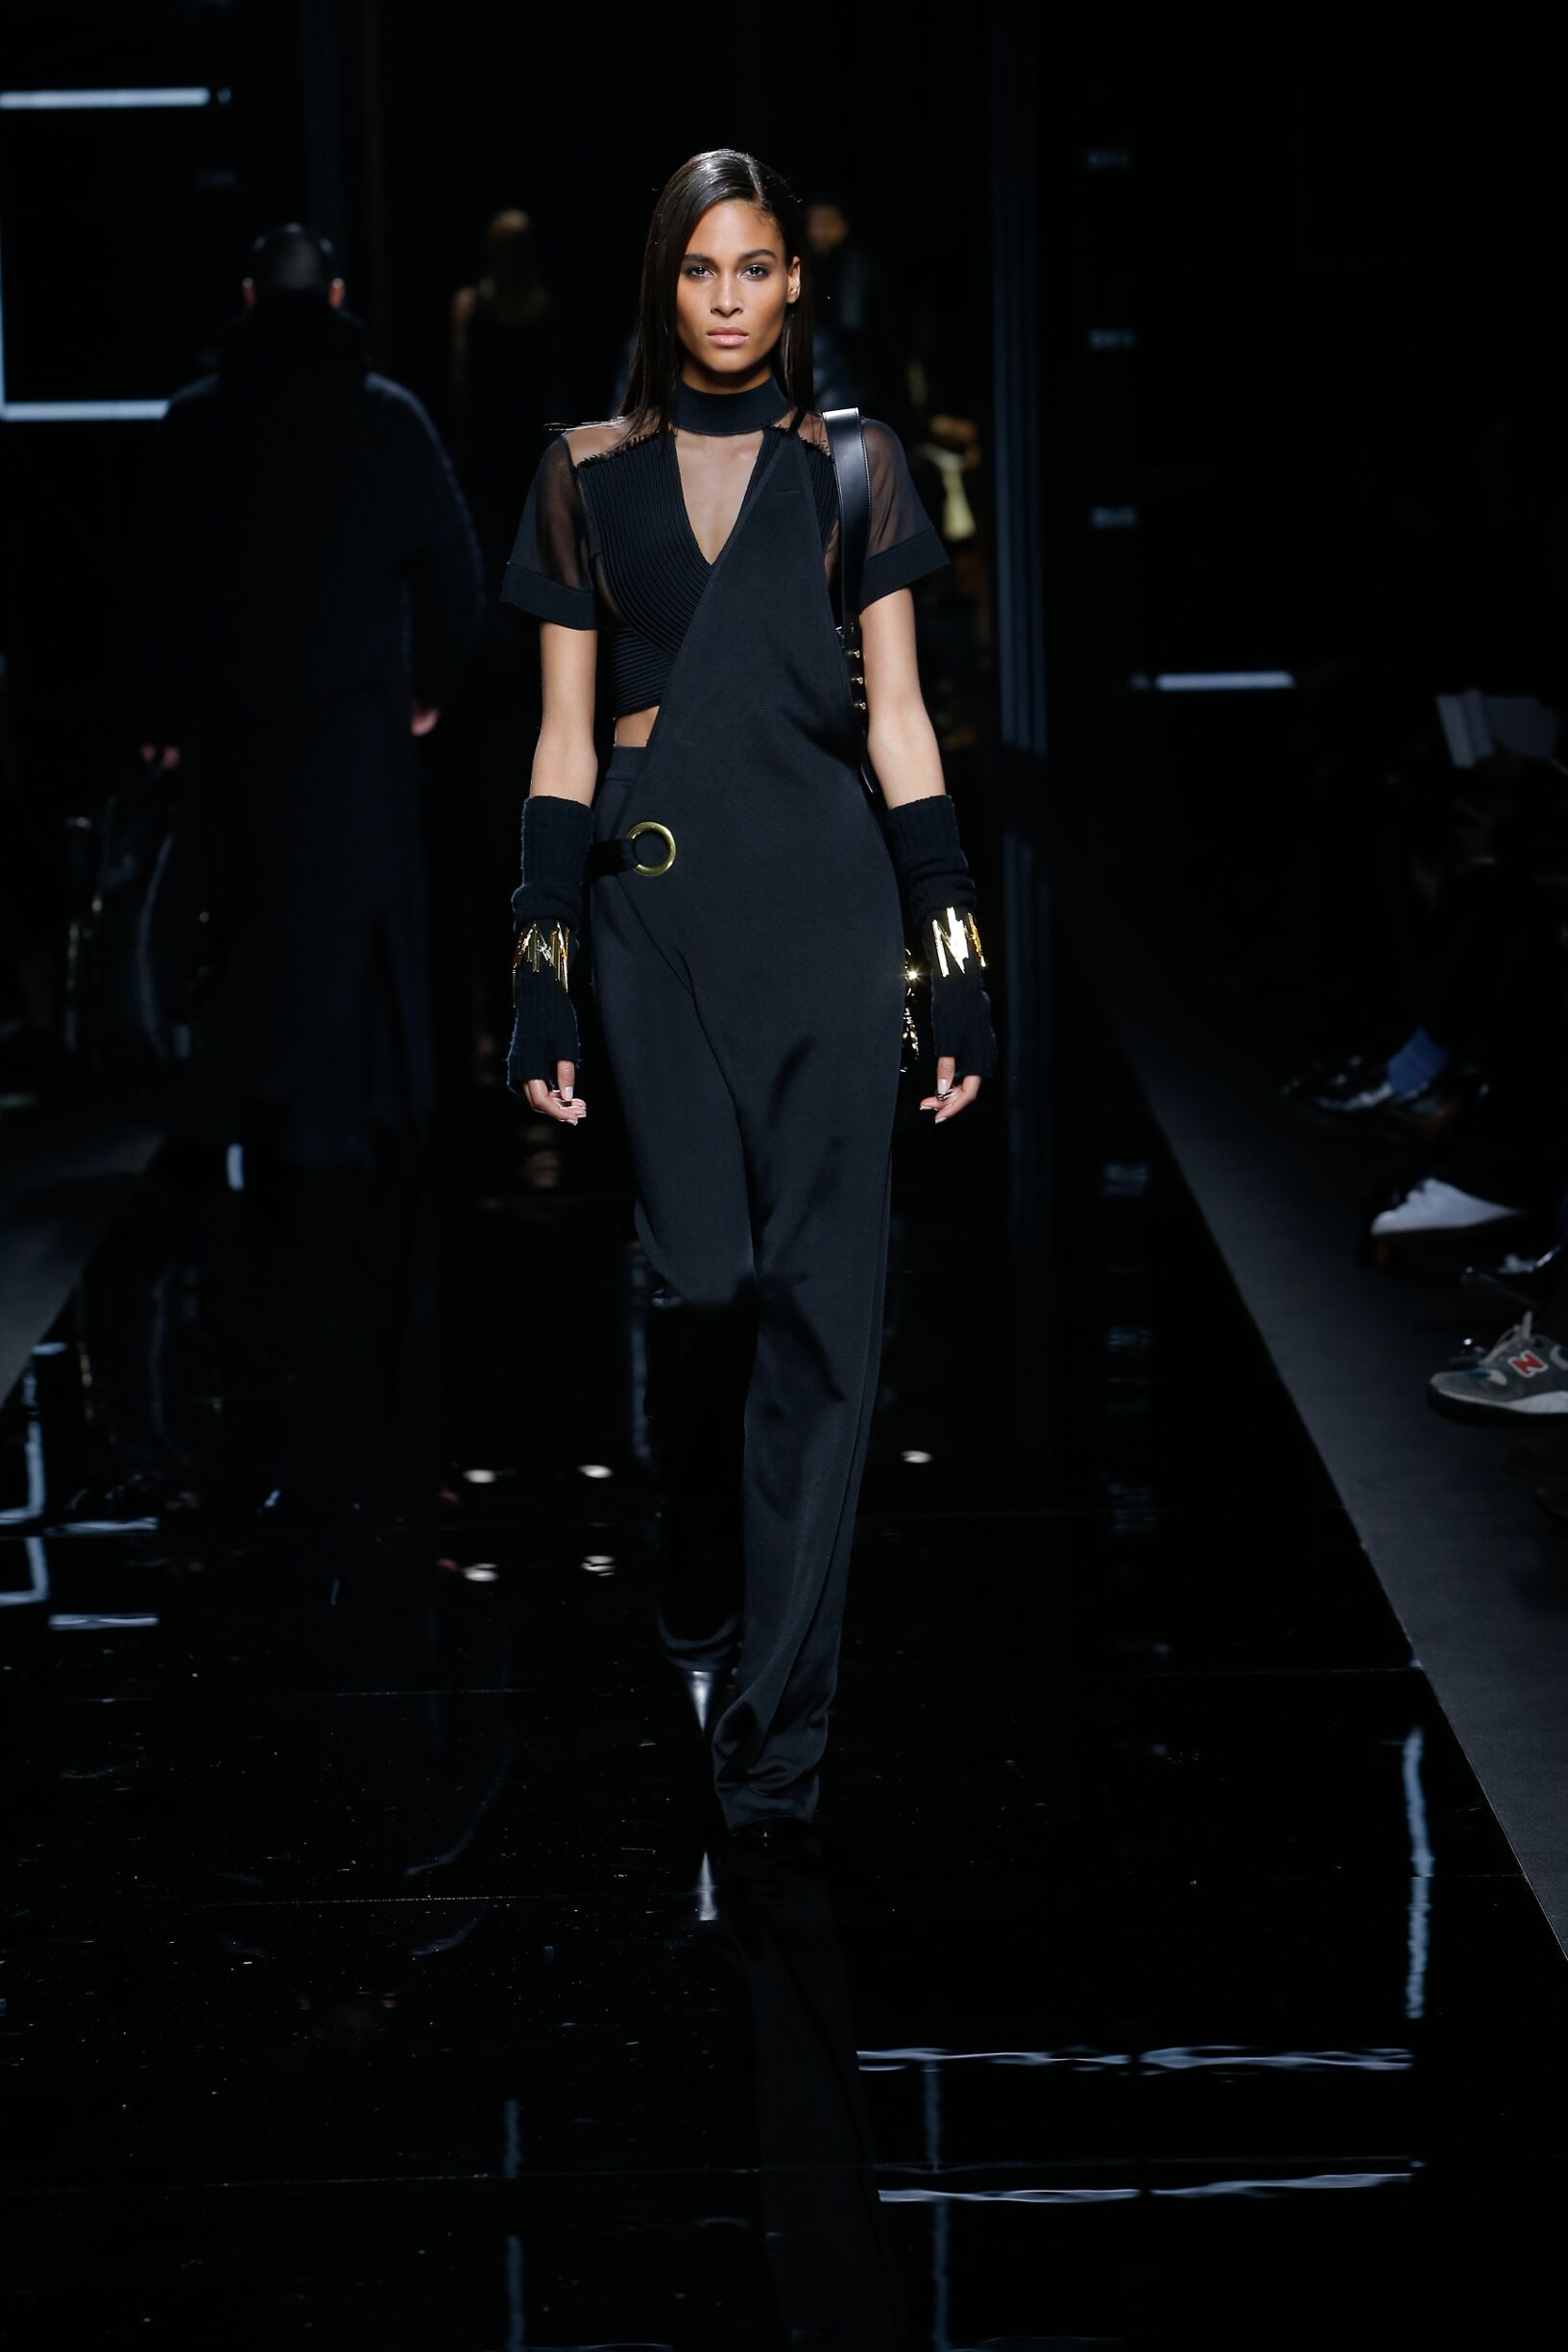 Balmain Woman Fall 2018 Catwalk